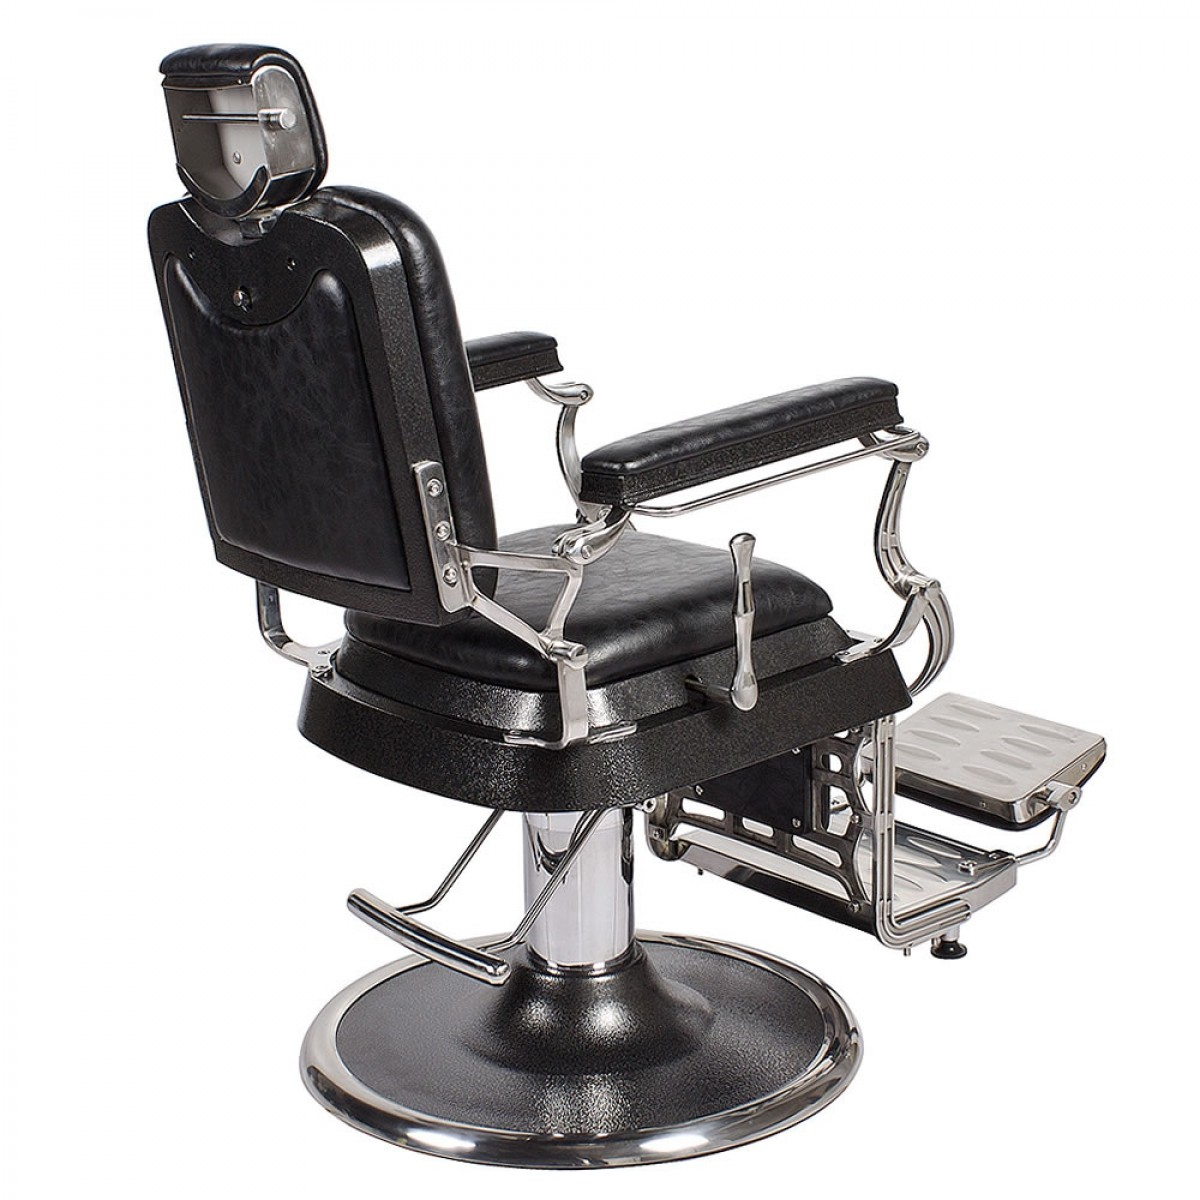 Quot Emperor Quot Barber Chair In Antique Black Barber Shop